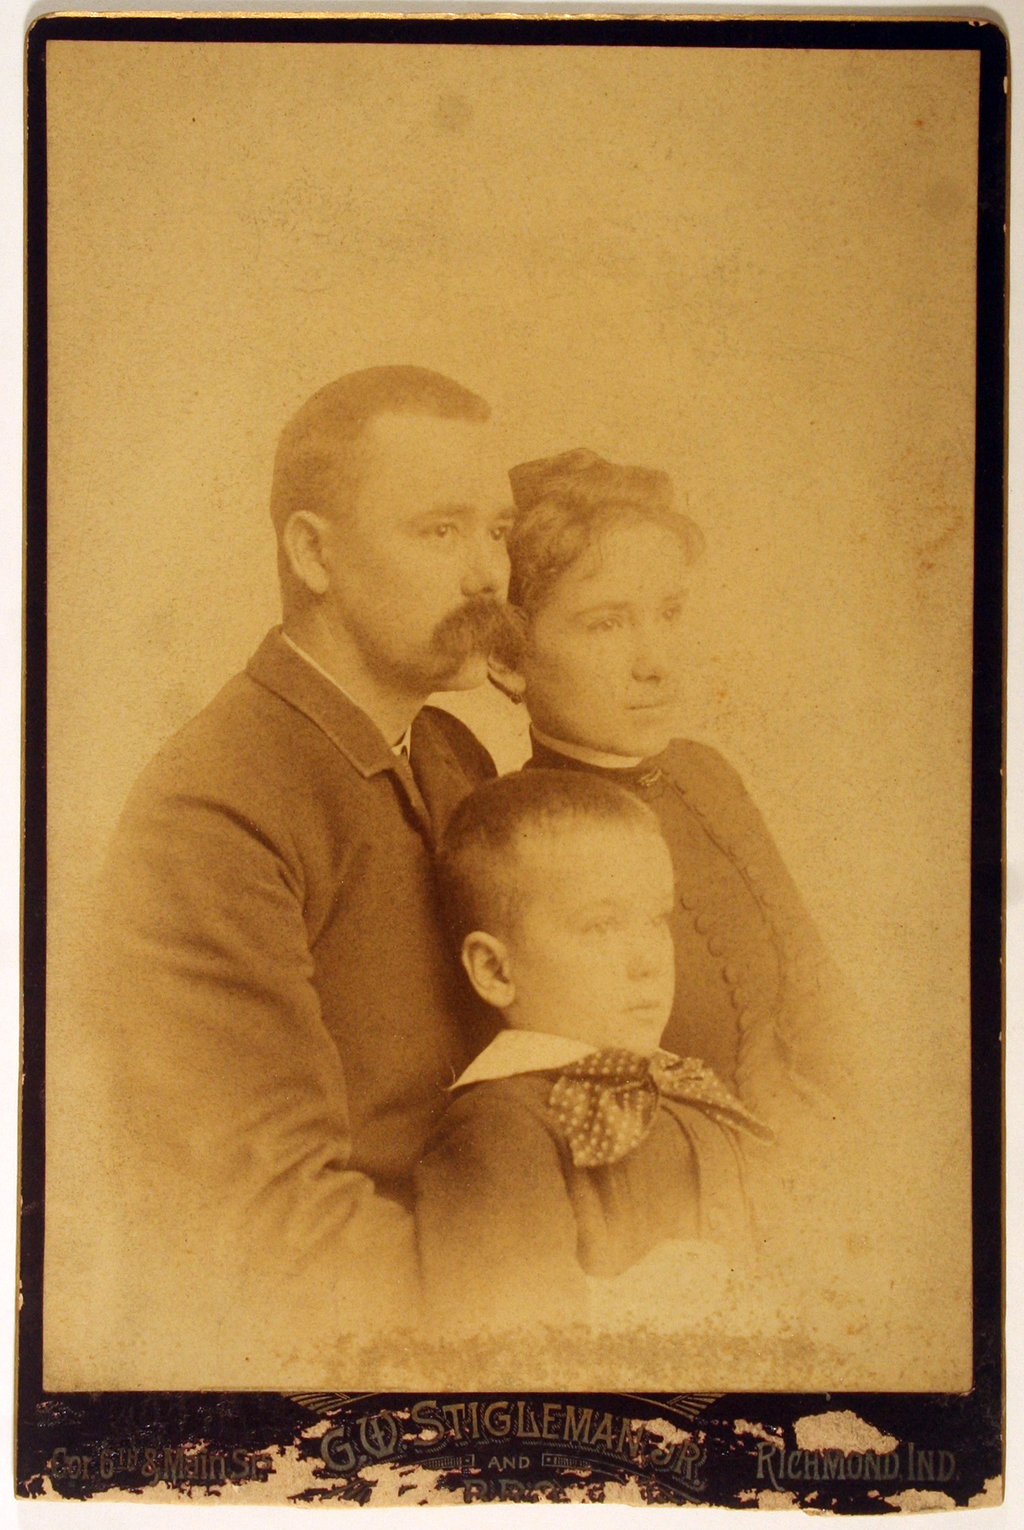 Moses, Eva and Willie Dwiggins (c.1883). Photograph by G.W. Stigleman, Jr. (Richmond, Indiana). Courtesy Special Collections, Boston Public Library.